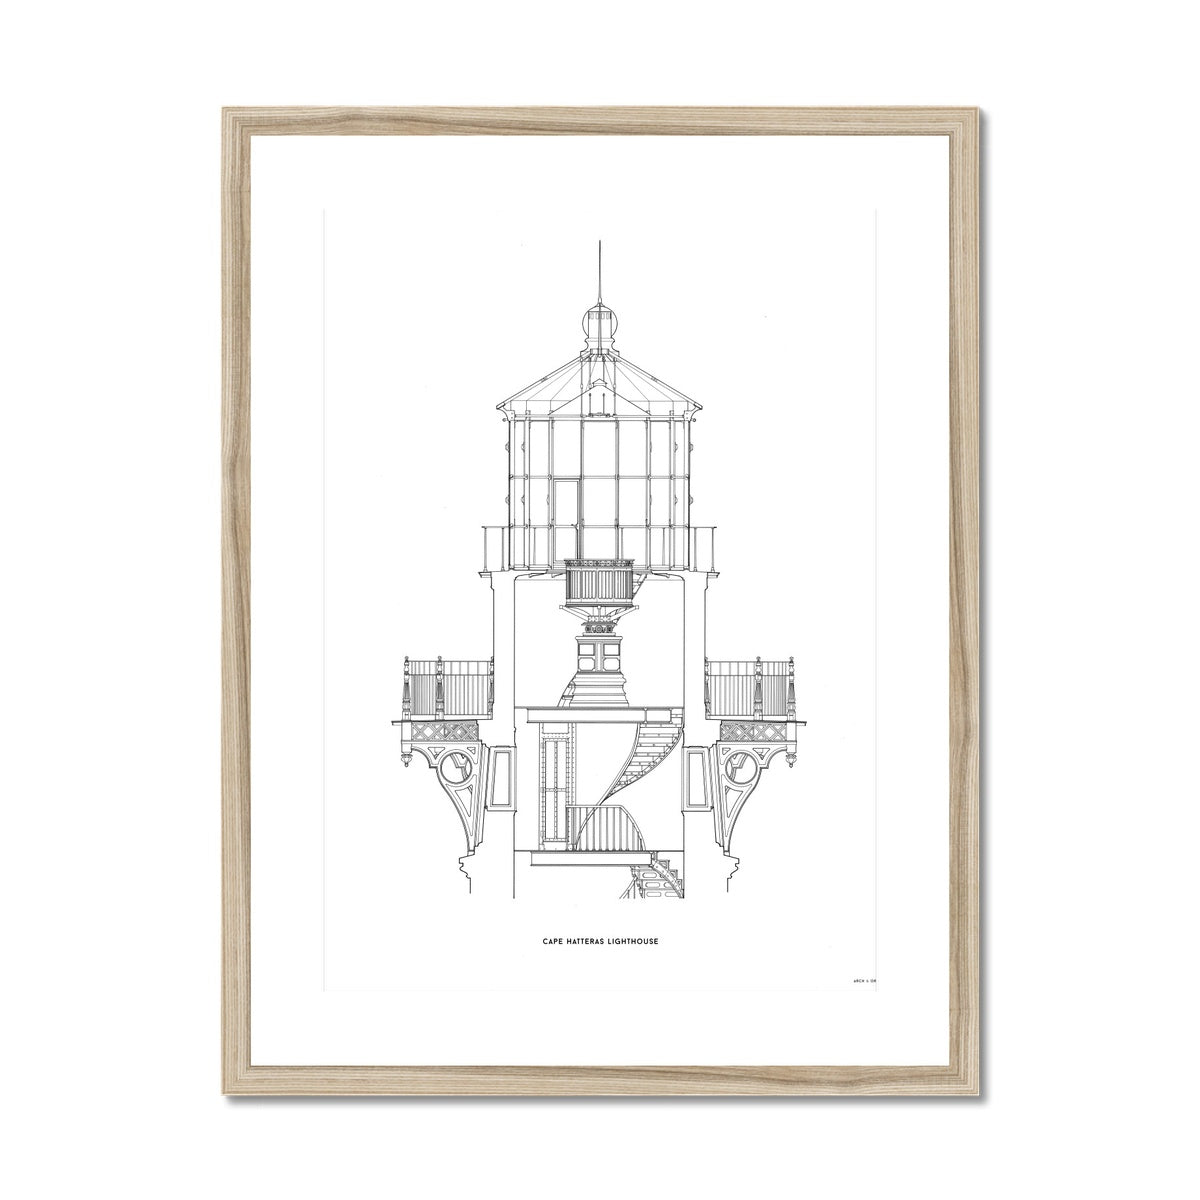 Cape Hatteras Lighthouse - Lantern Cross Section - White -  Framed & Mounted Print